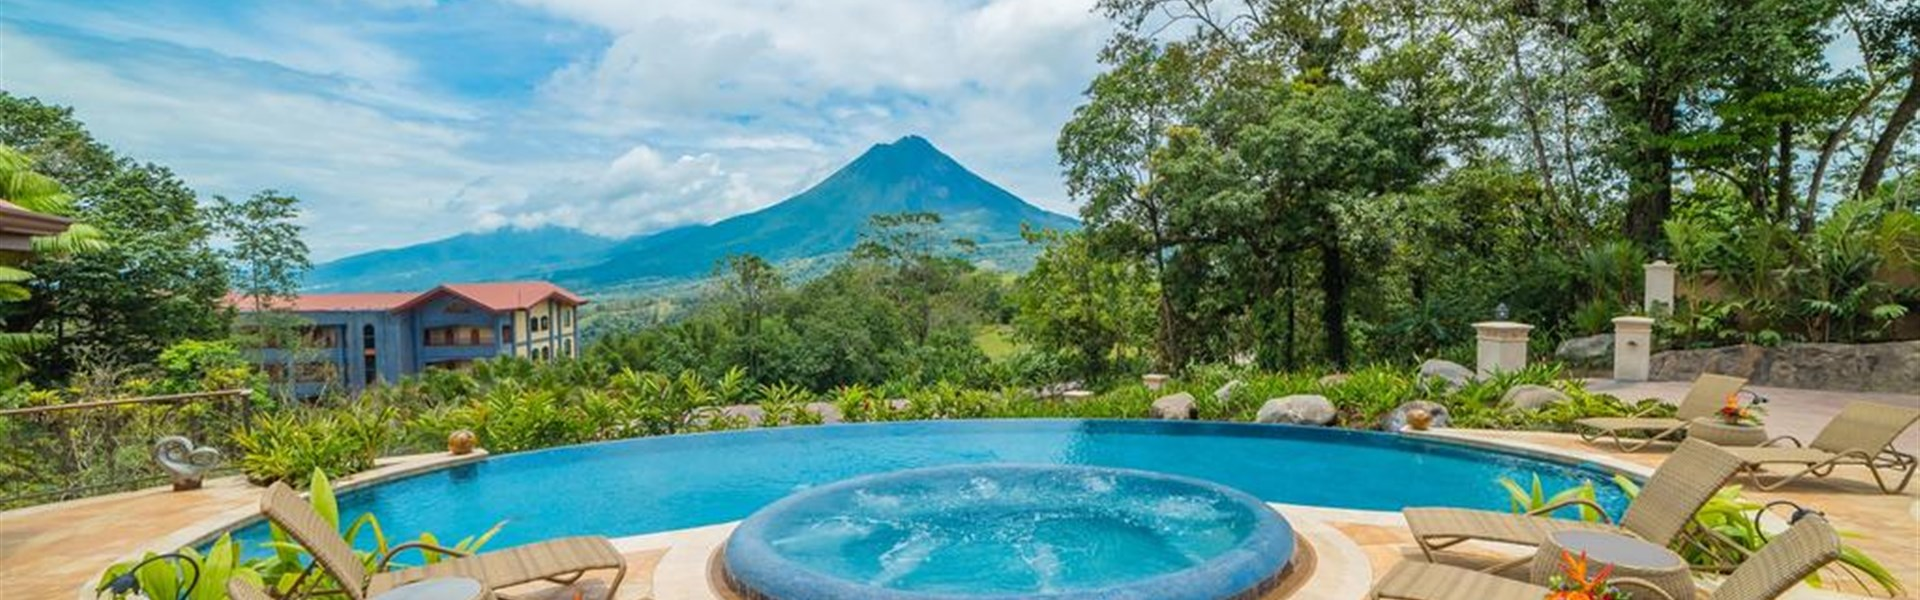 Marco Polo - Arenal Paraiso - Arenal - The Springs and Spa